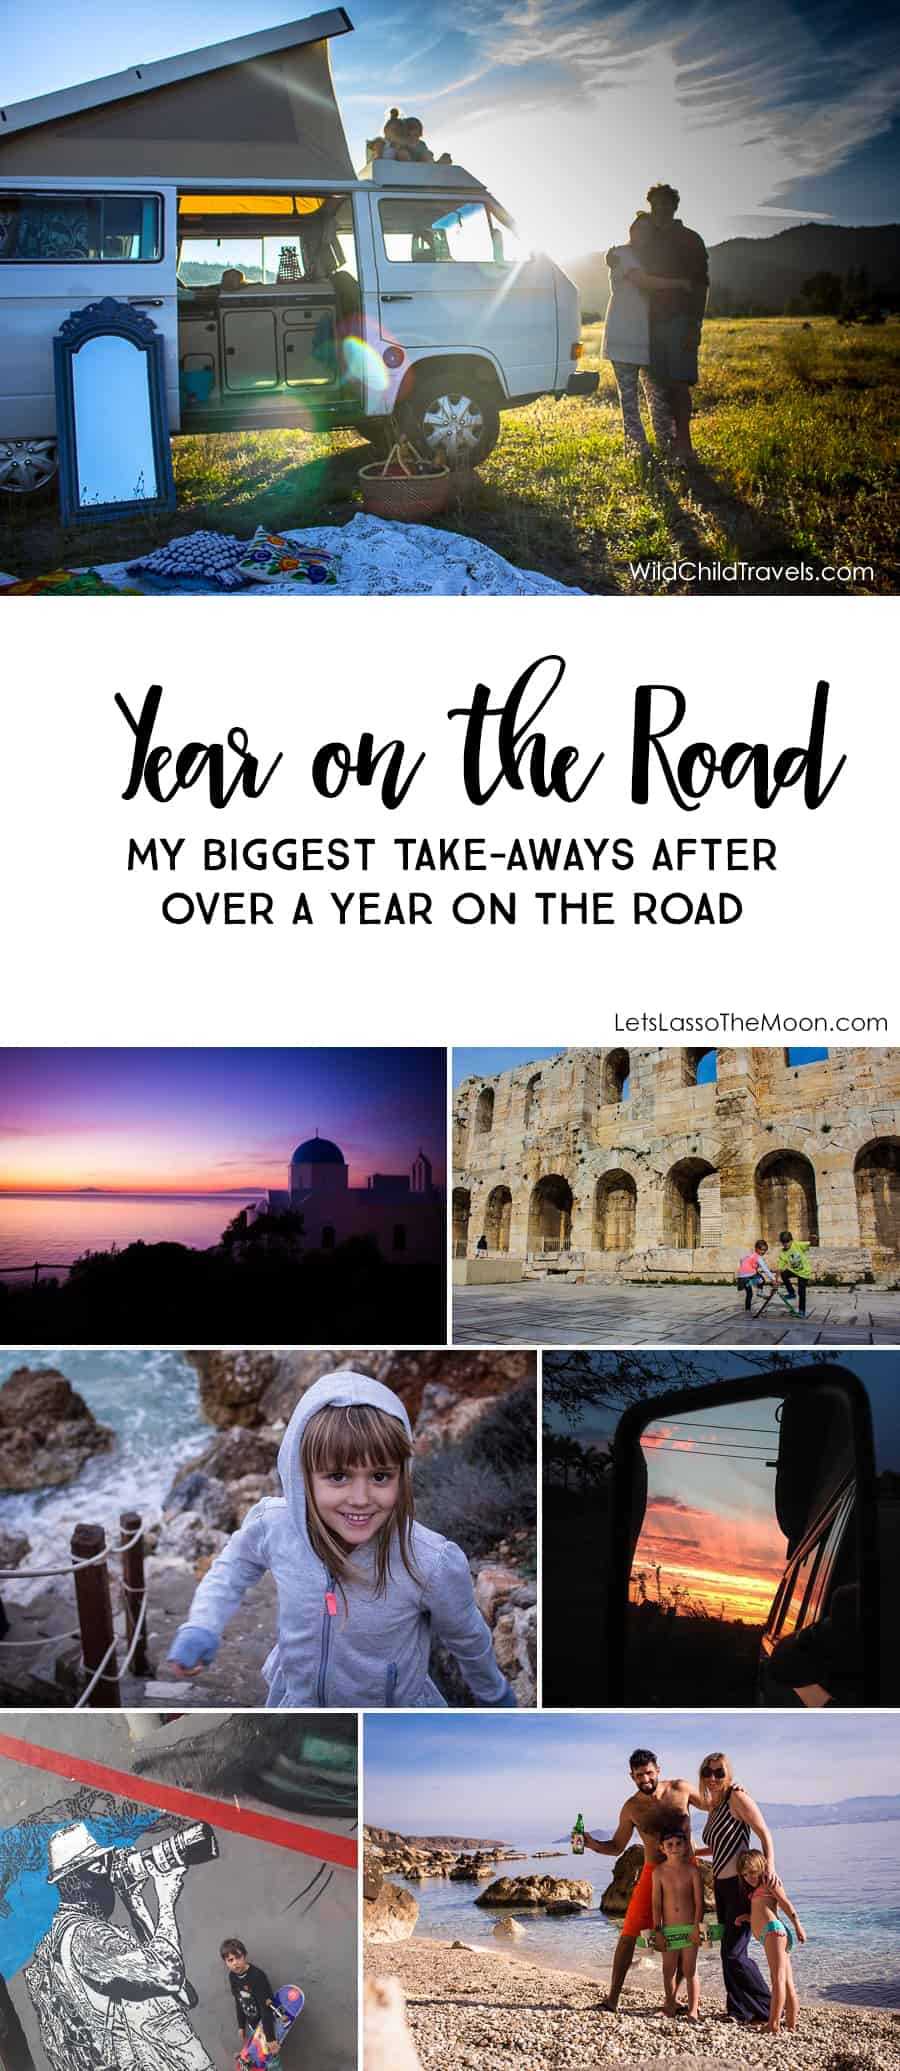 My Biggest Take-Aways After Over a Year on the Road: Finding Joy in the Everyday *Loving this travel post